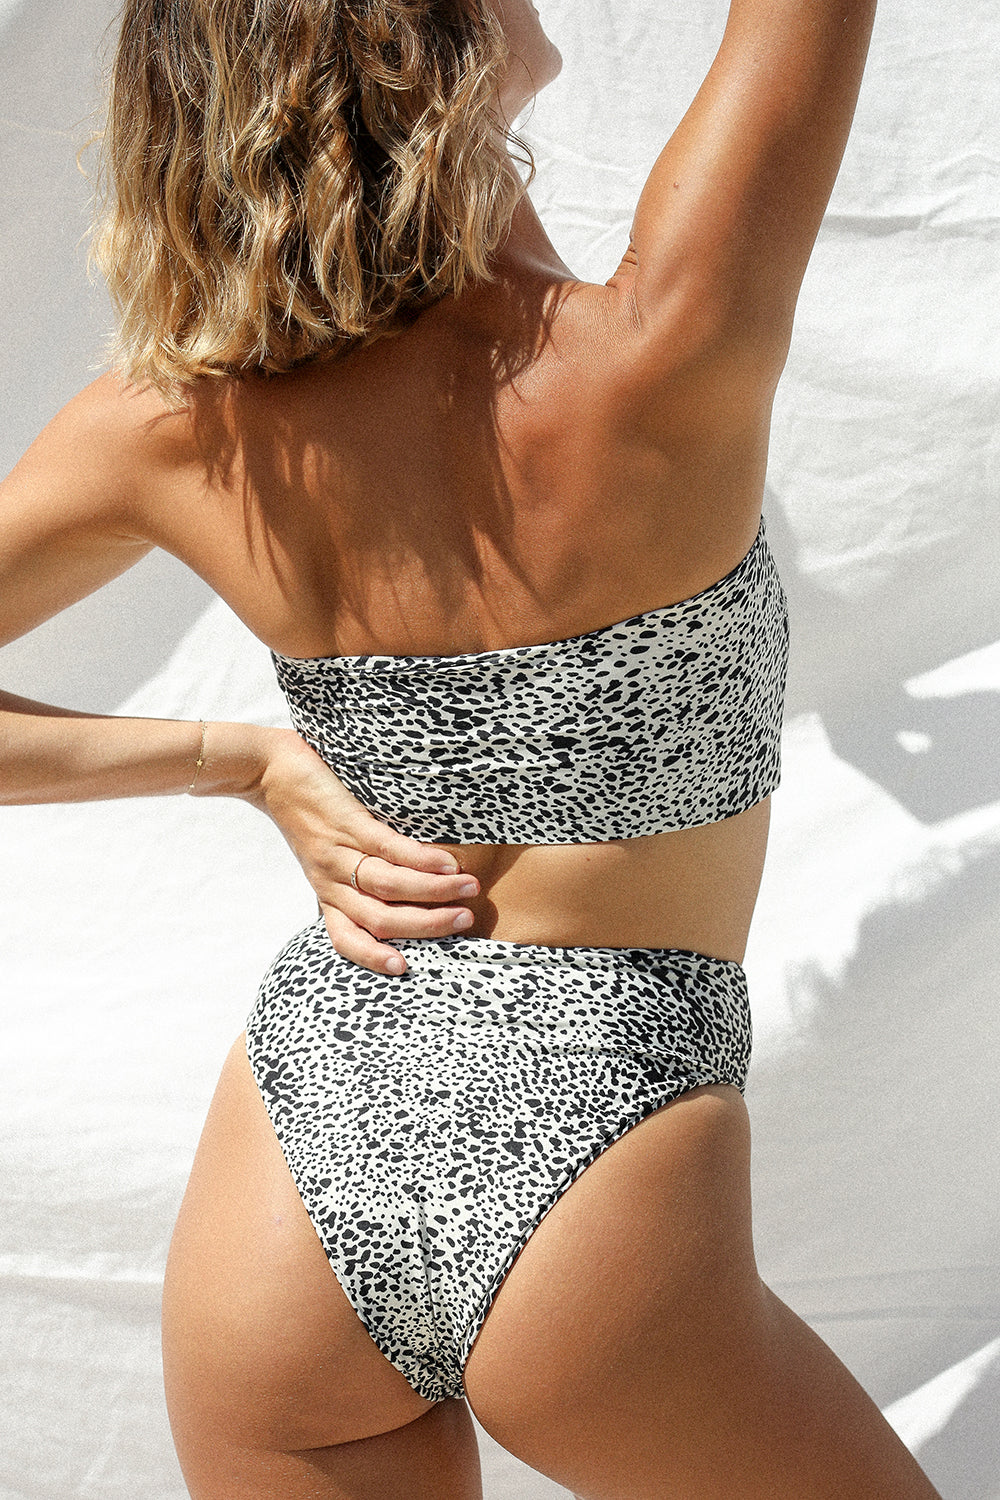 Stone Fox Swim Sumatra Bottom in Snow Leopard